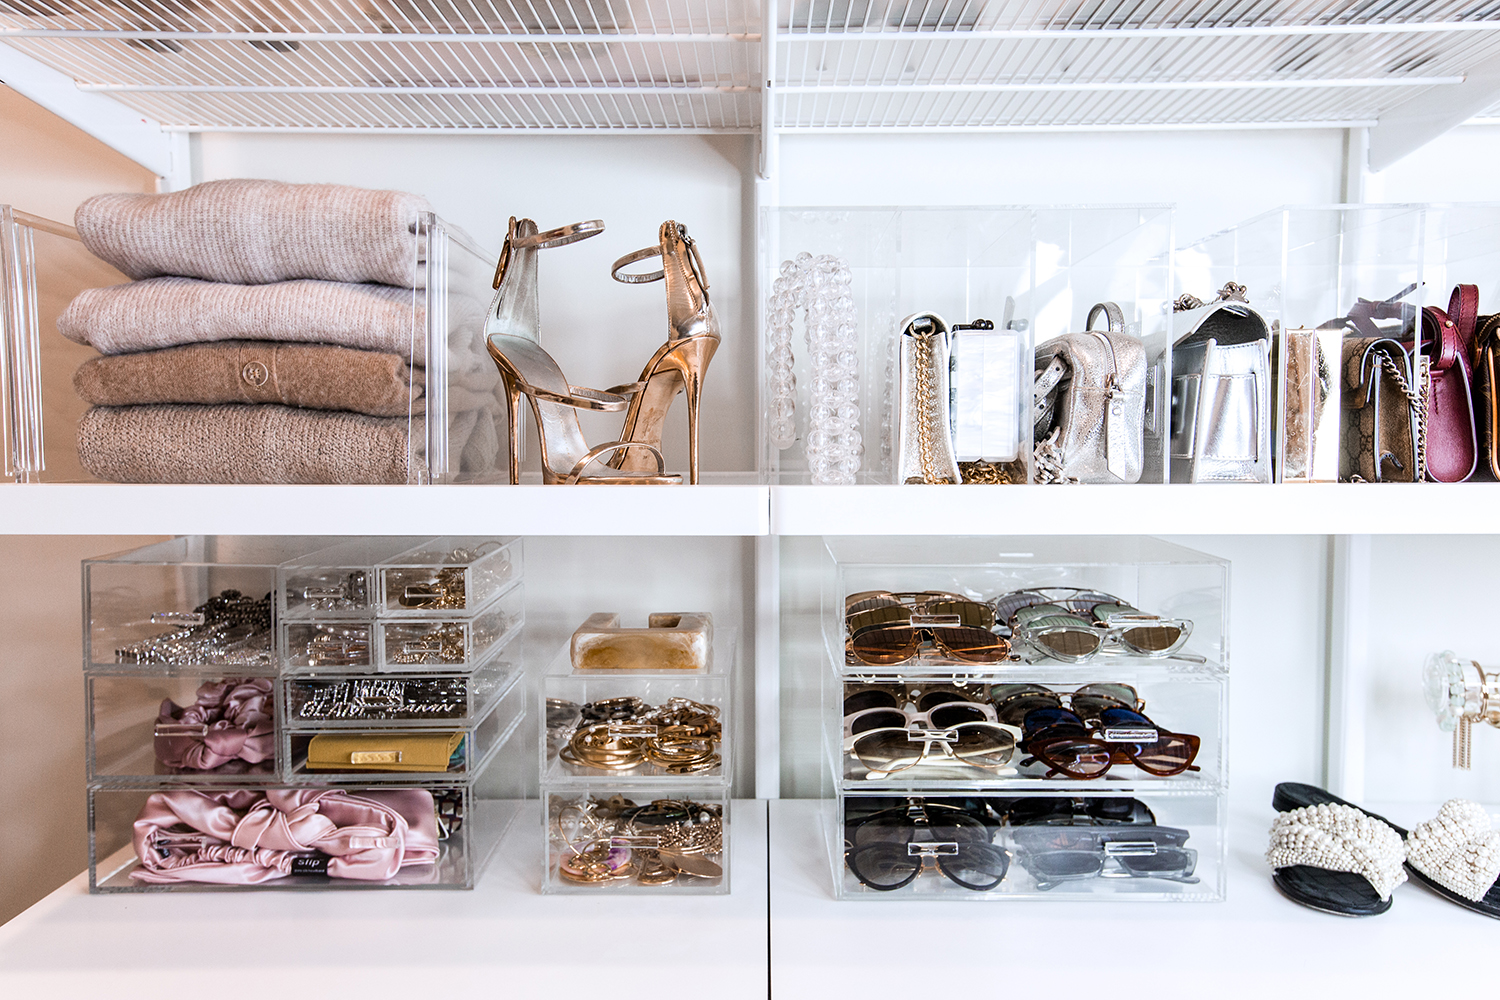 container store closet organizers acrylic